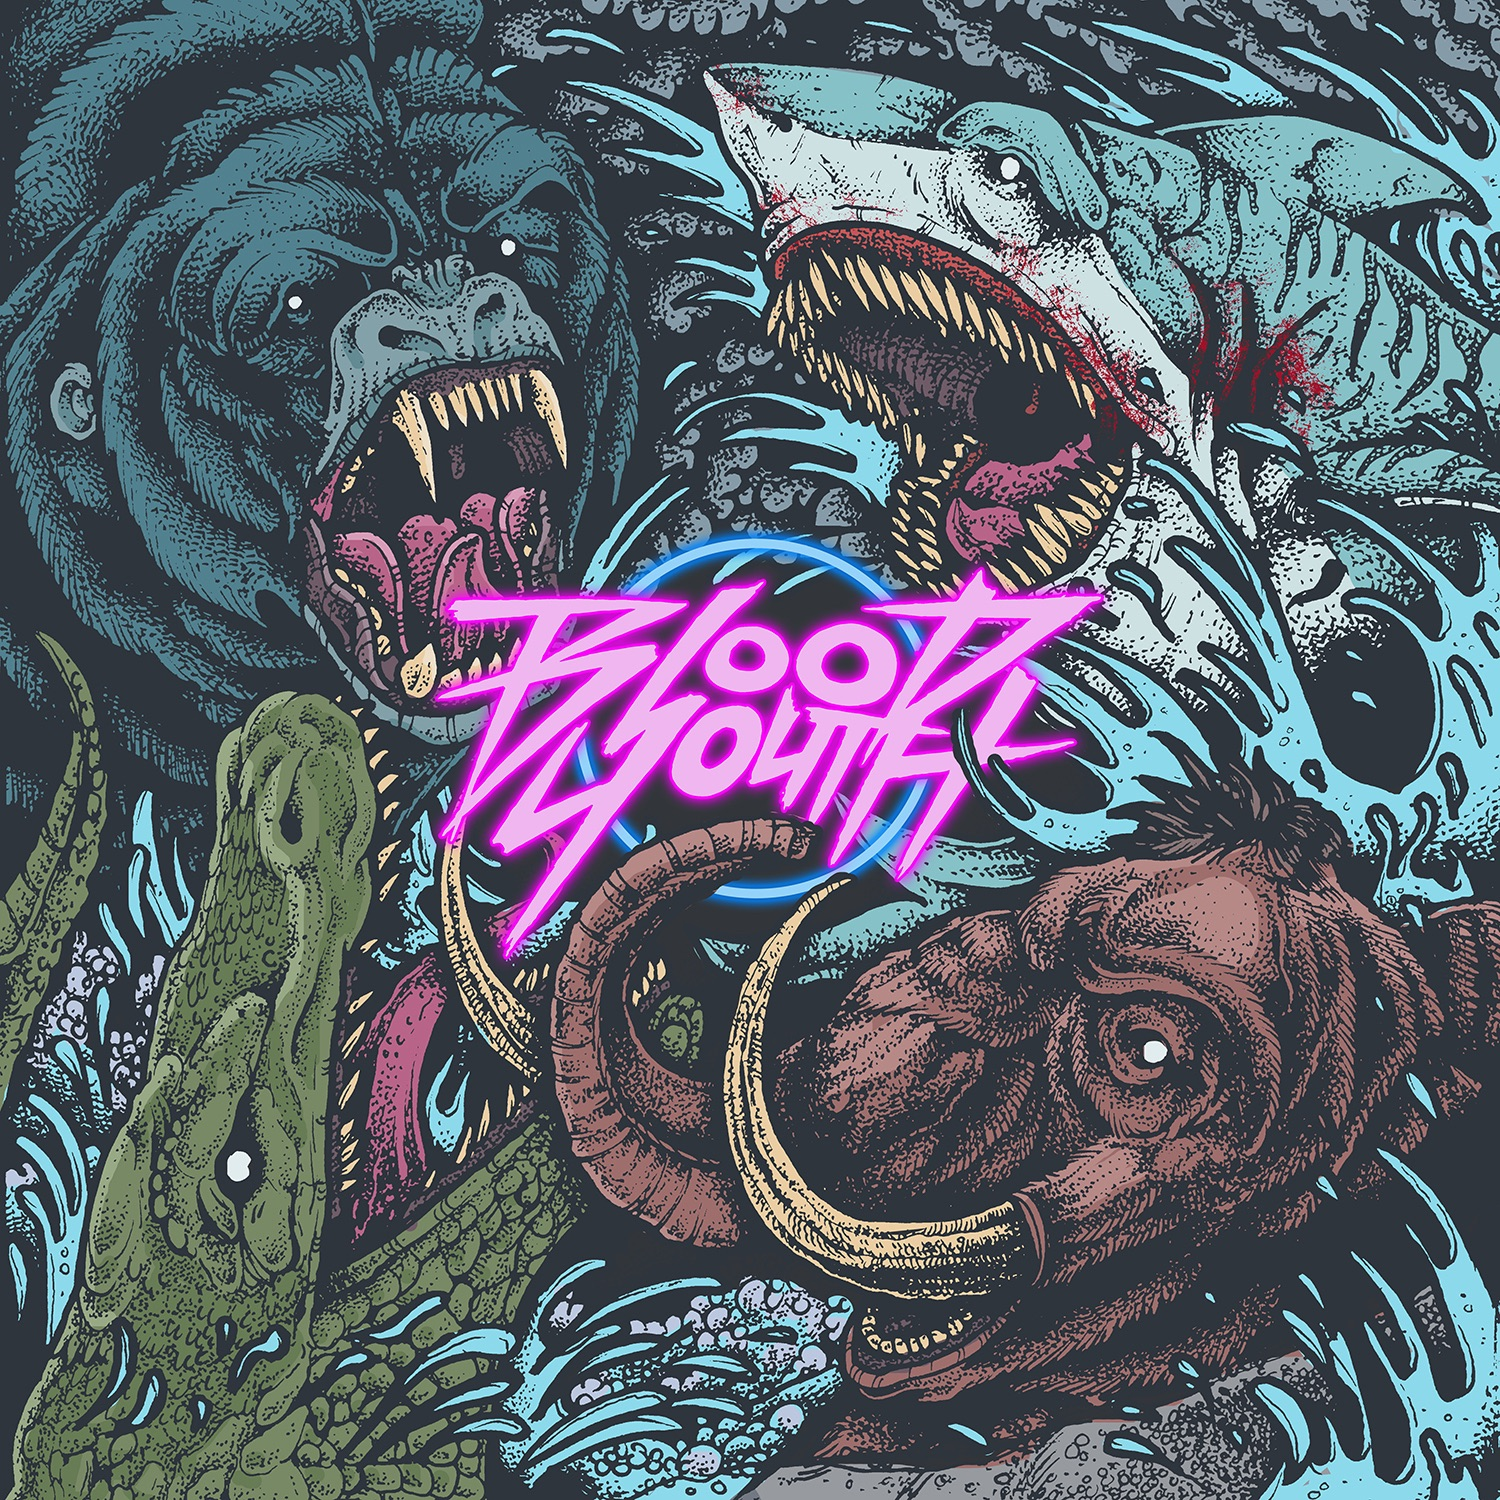 Blood Youth - Closure [EP] (2016)